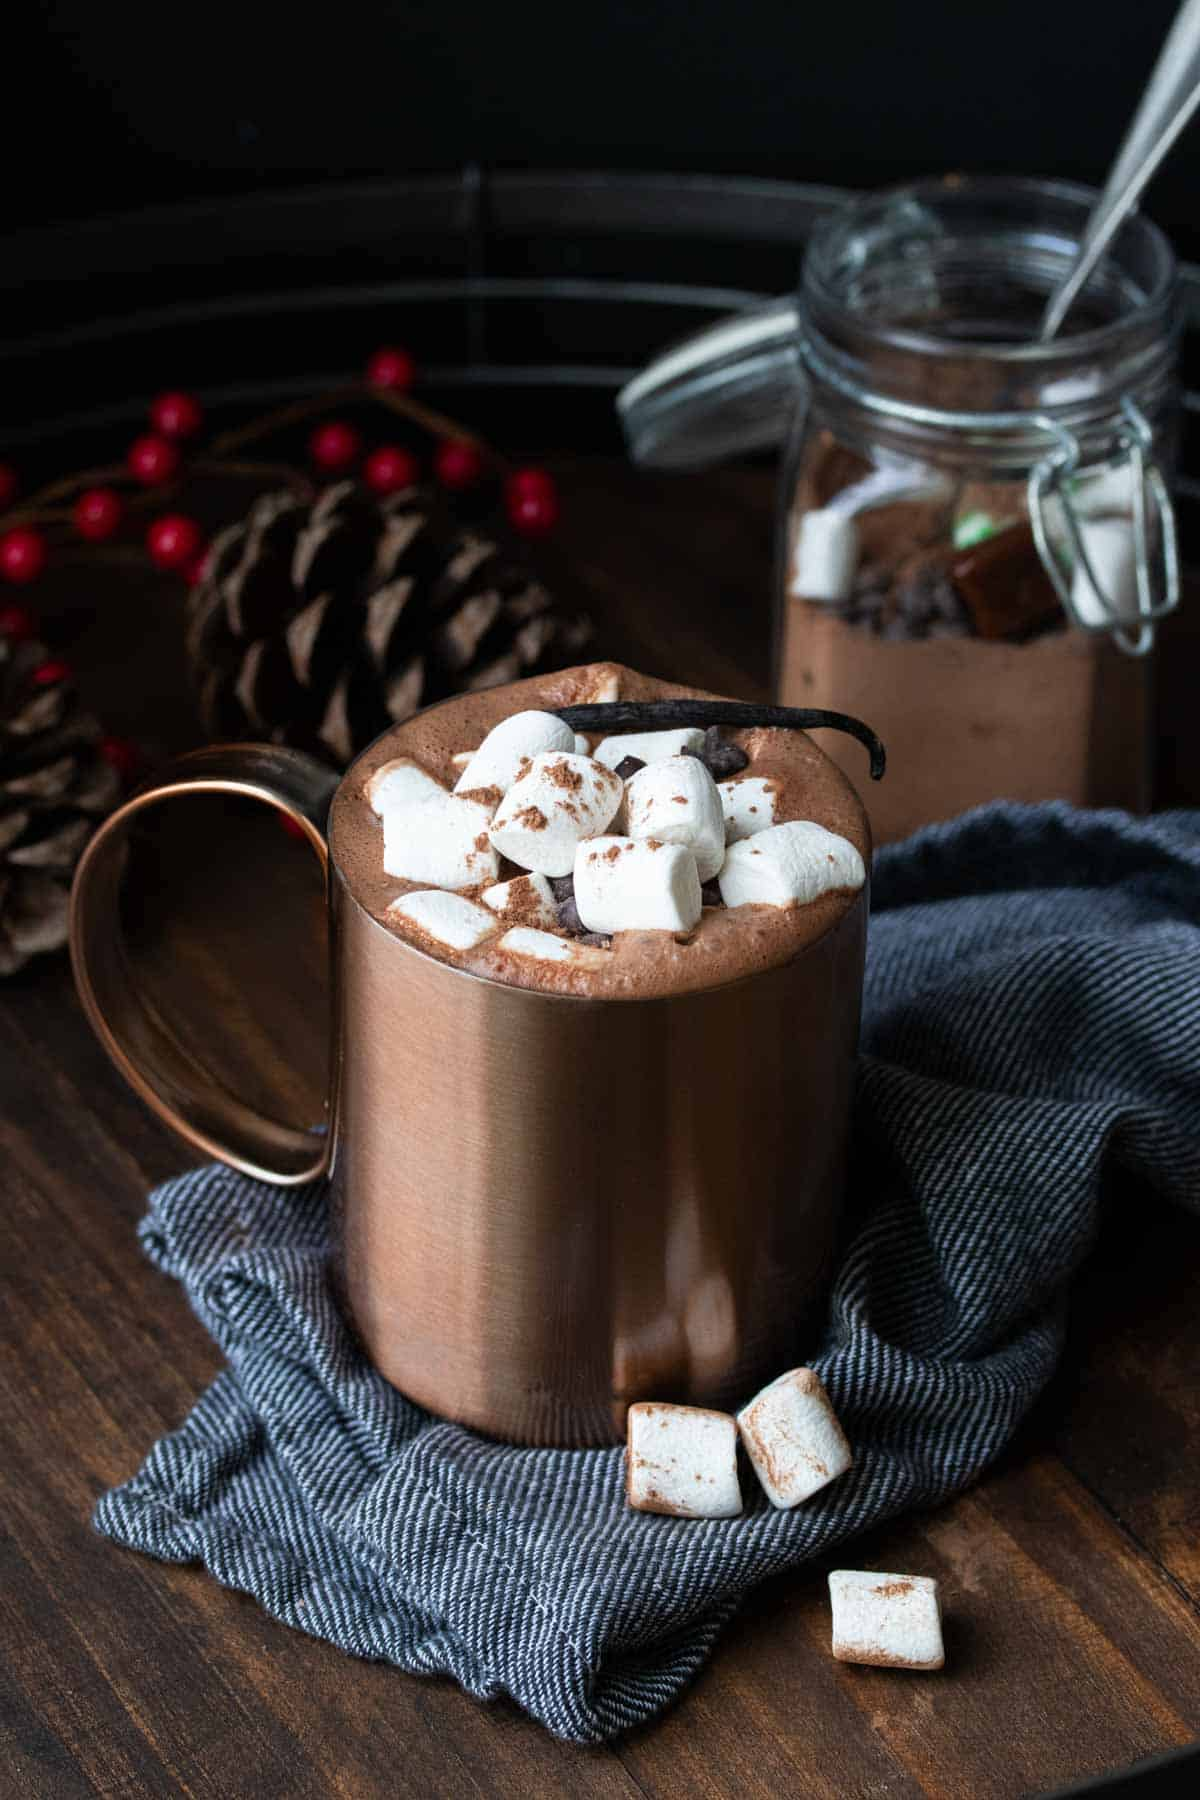 Copper mug with hot chocolate topped with marshmallows